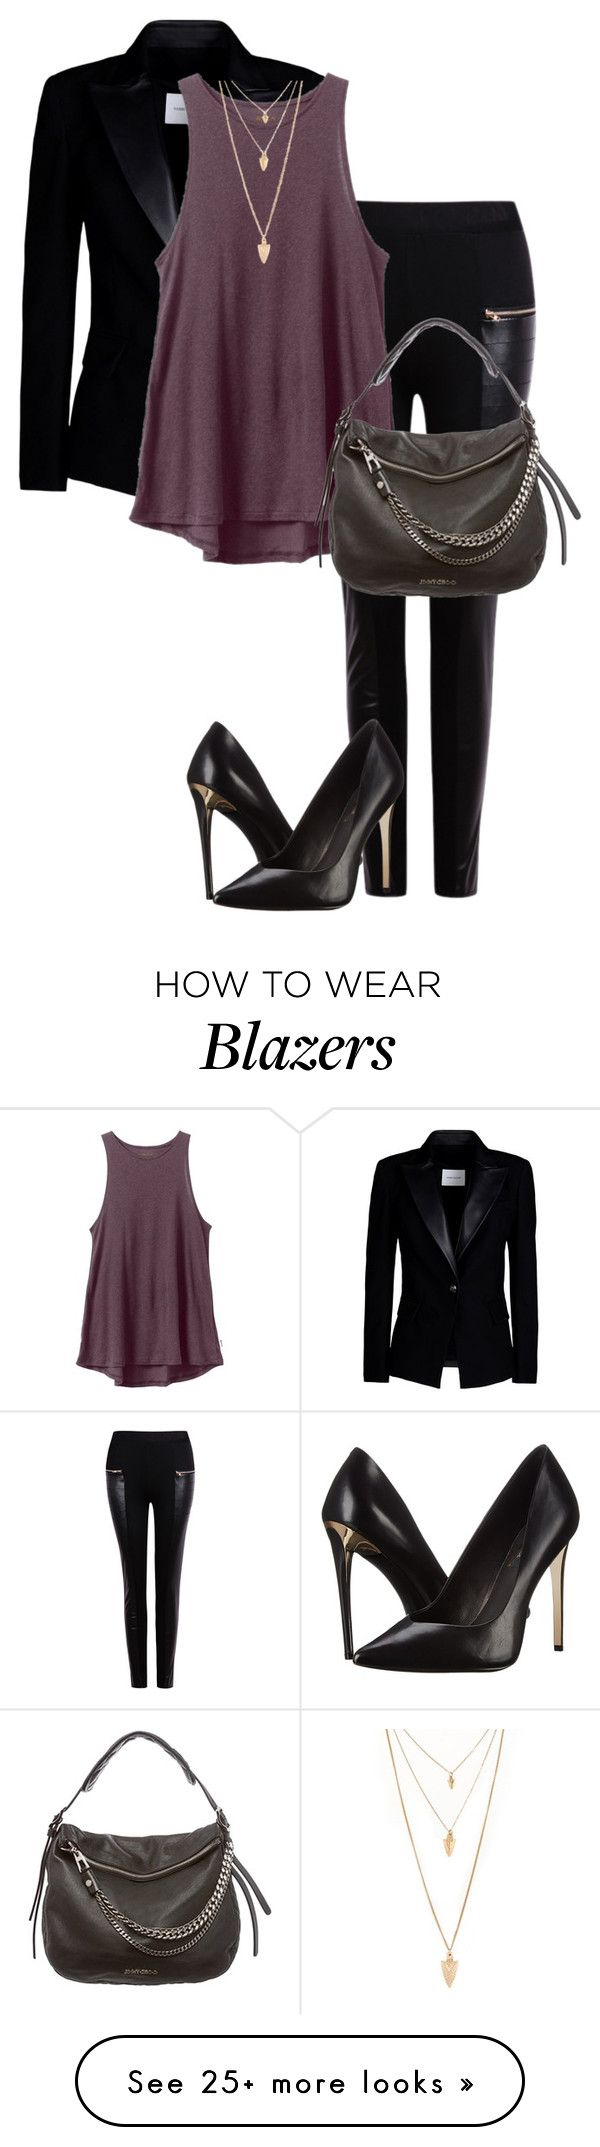 """""""Untitled #584"""" by indirareeves on Polyvore featuring Pierre Balmain, RVCA, Rachel Zoe, Jimmy Choo, Forever 21, women's clothing, women, female, woman and misses"""